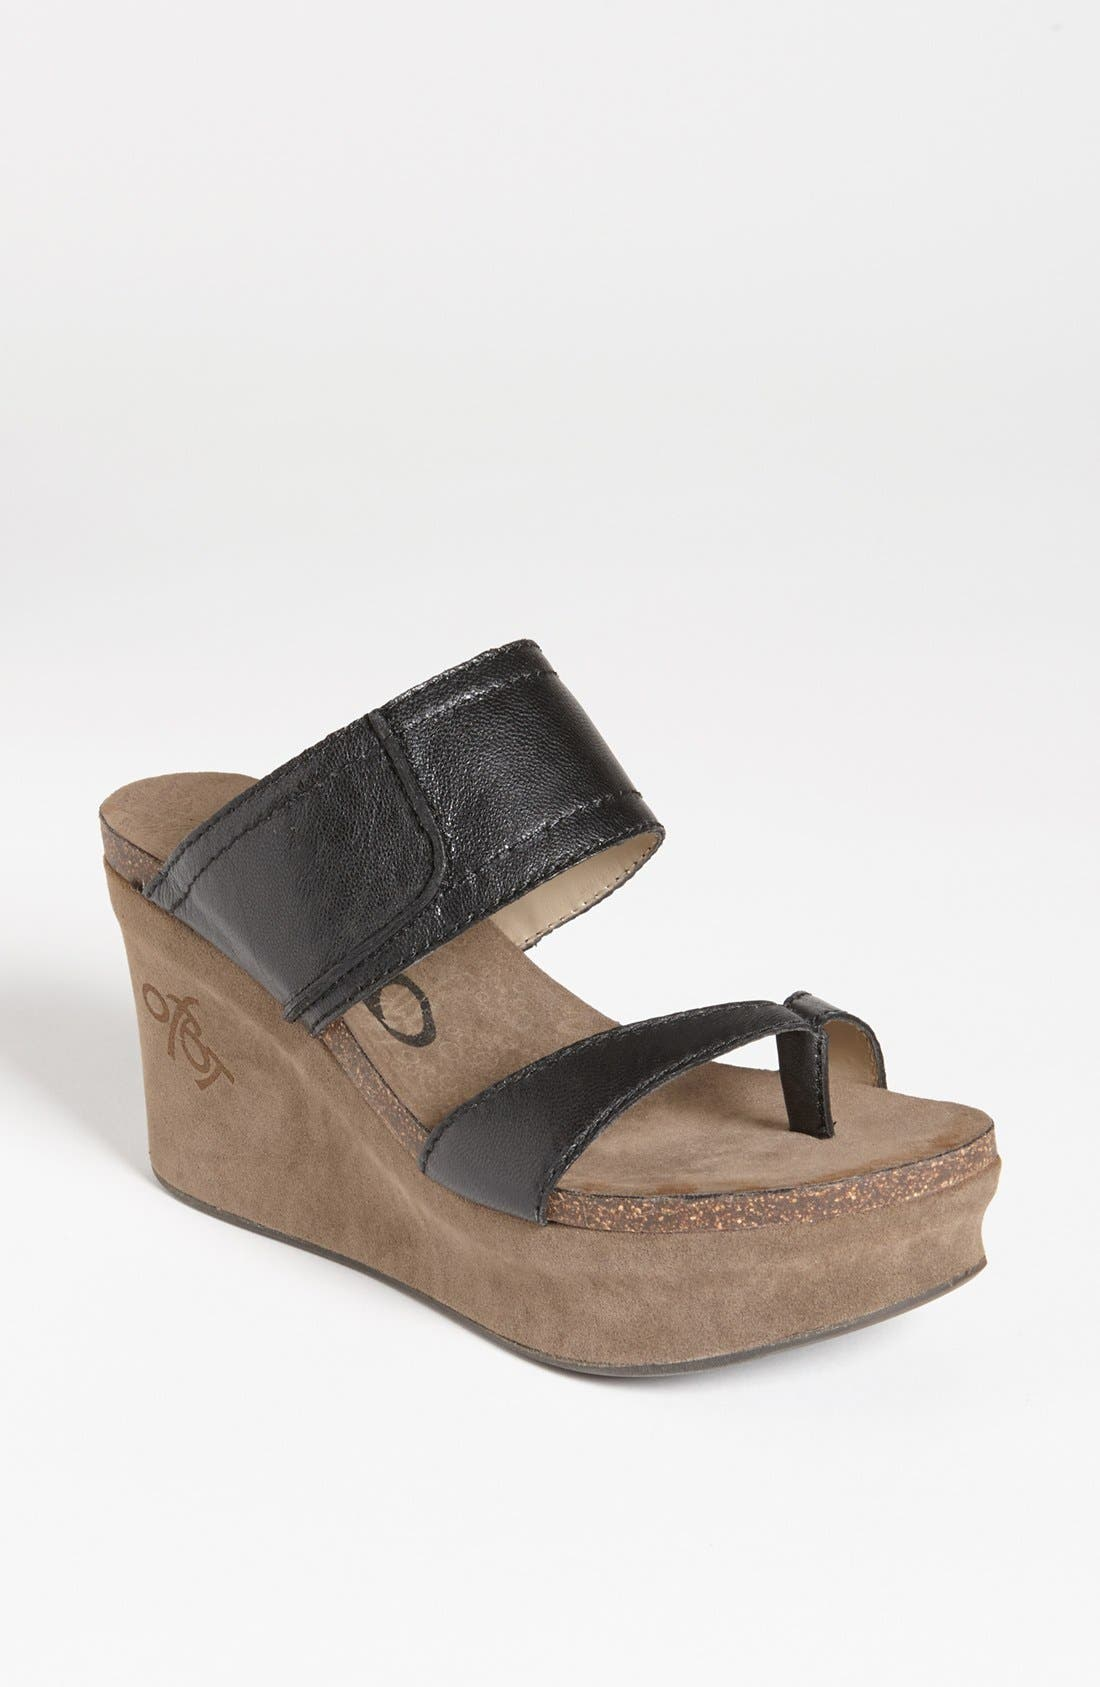 Alternate Image 1 Selected - OTBT 'Brookfield' Slide Sandal